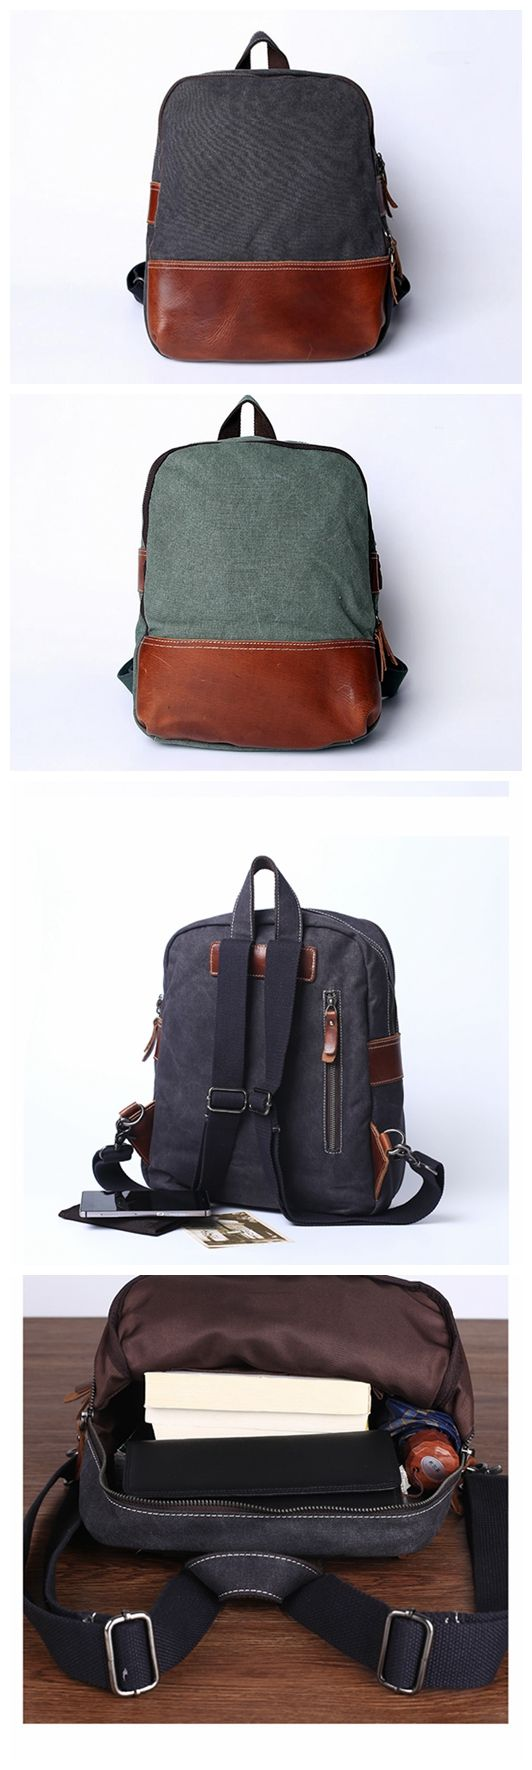 Canvas Leather Backpack, School Backpack, Travel Backpack for Men and Women JC025